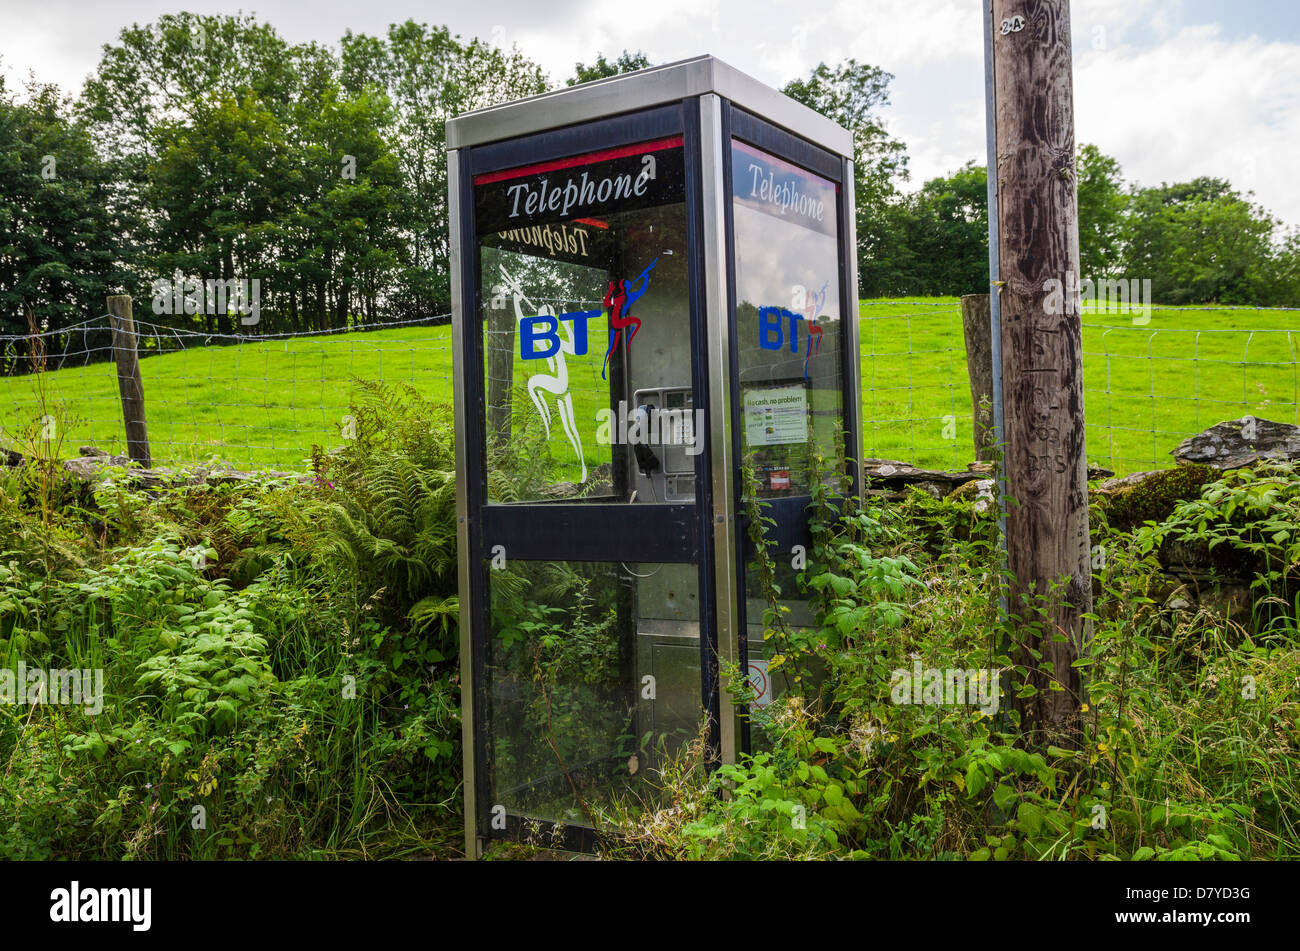 Public telephone booth in the countryside in the Lake District, Cumbria, England. - Stock Image